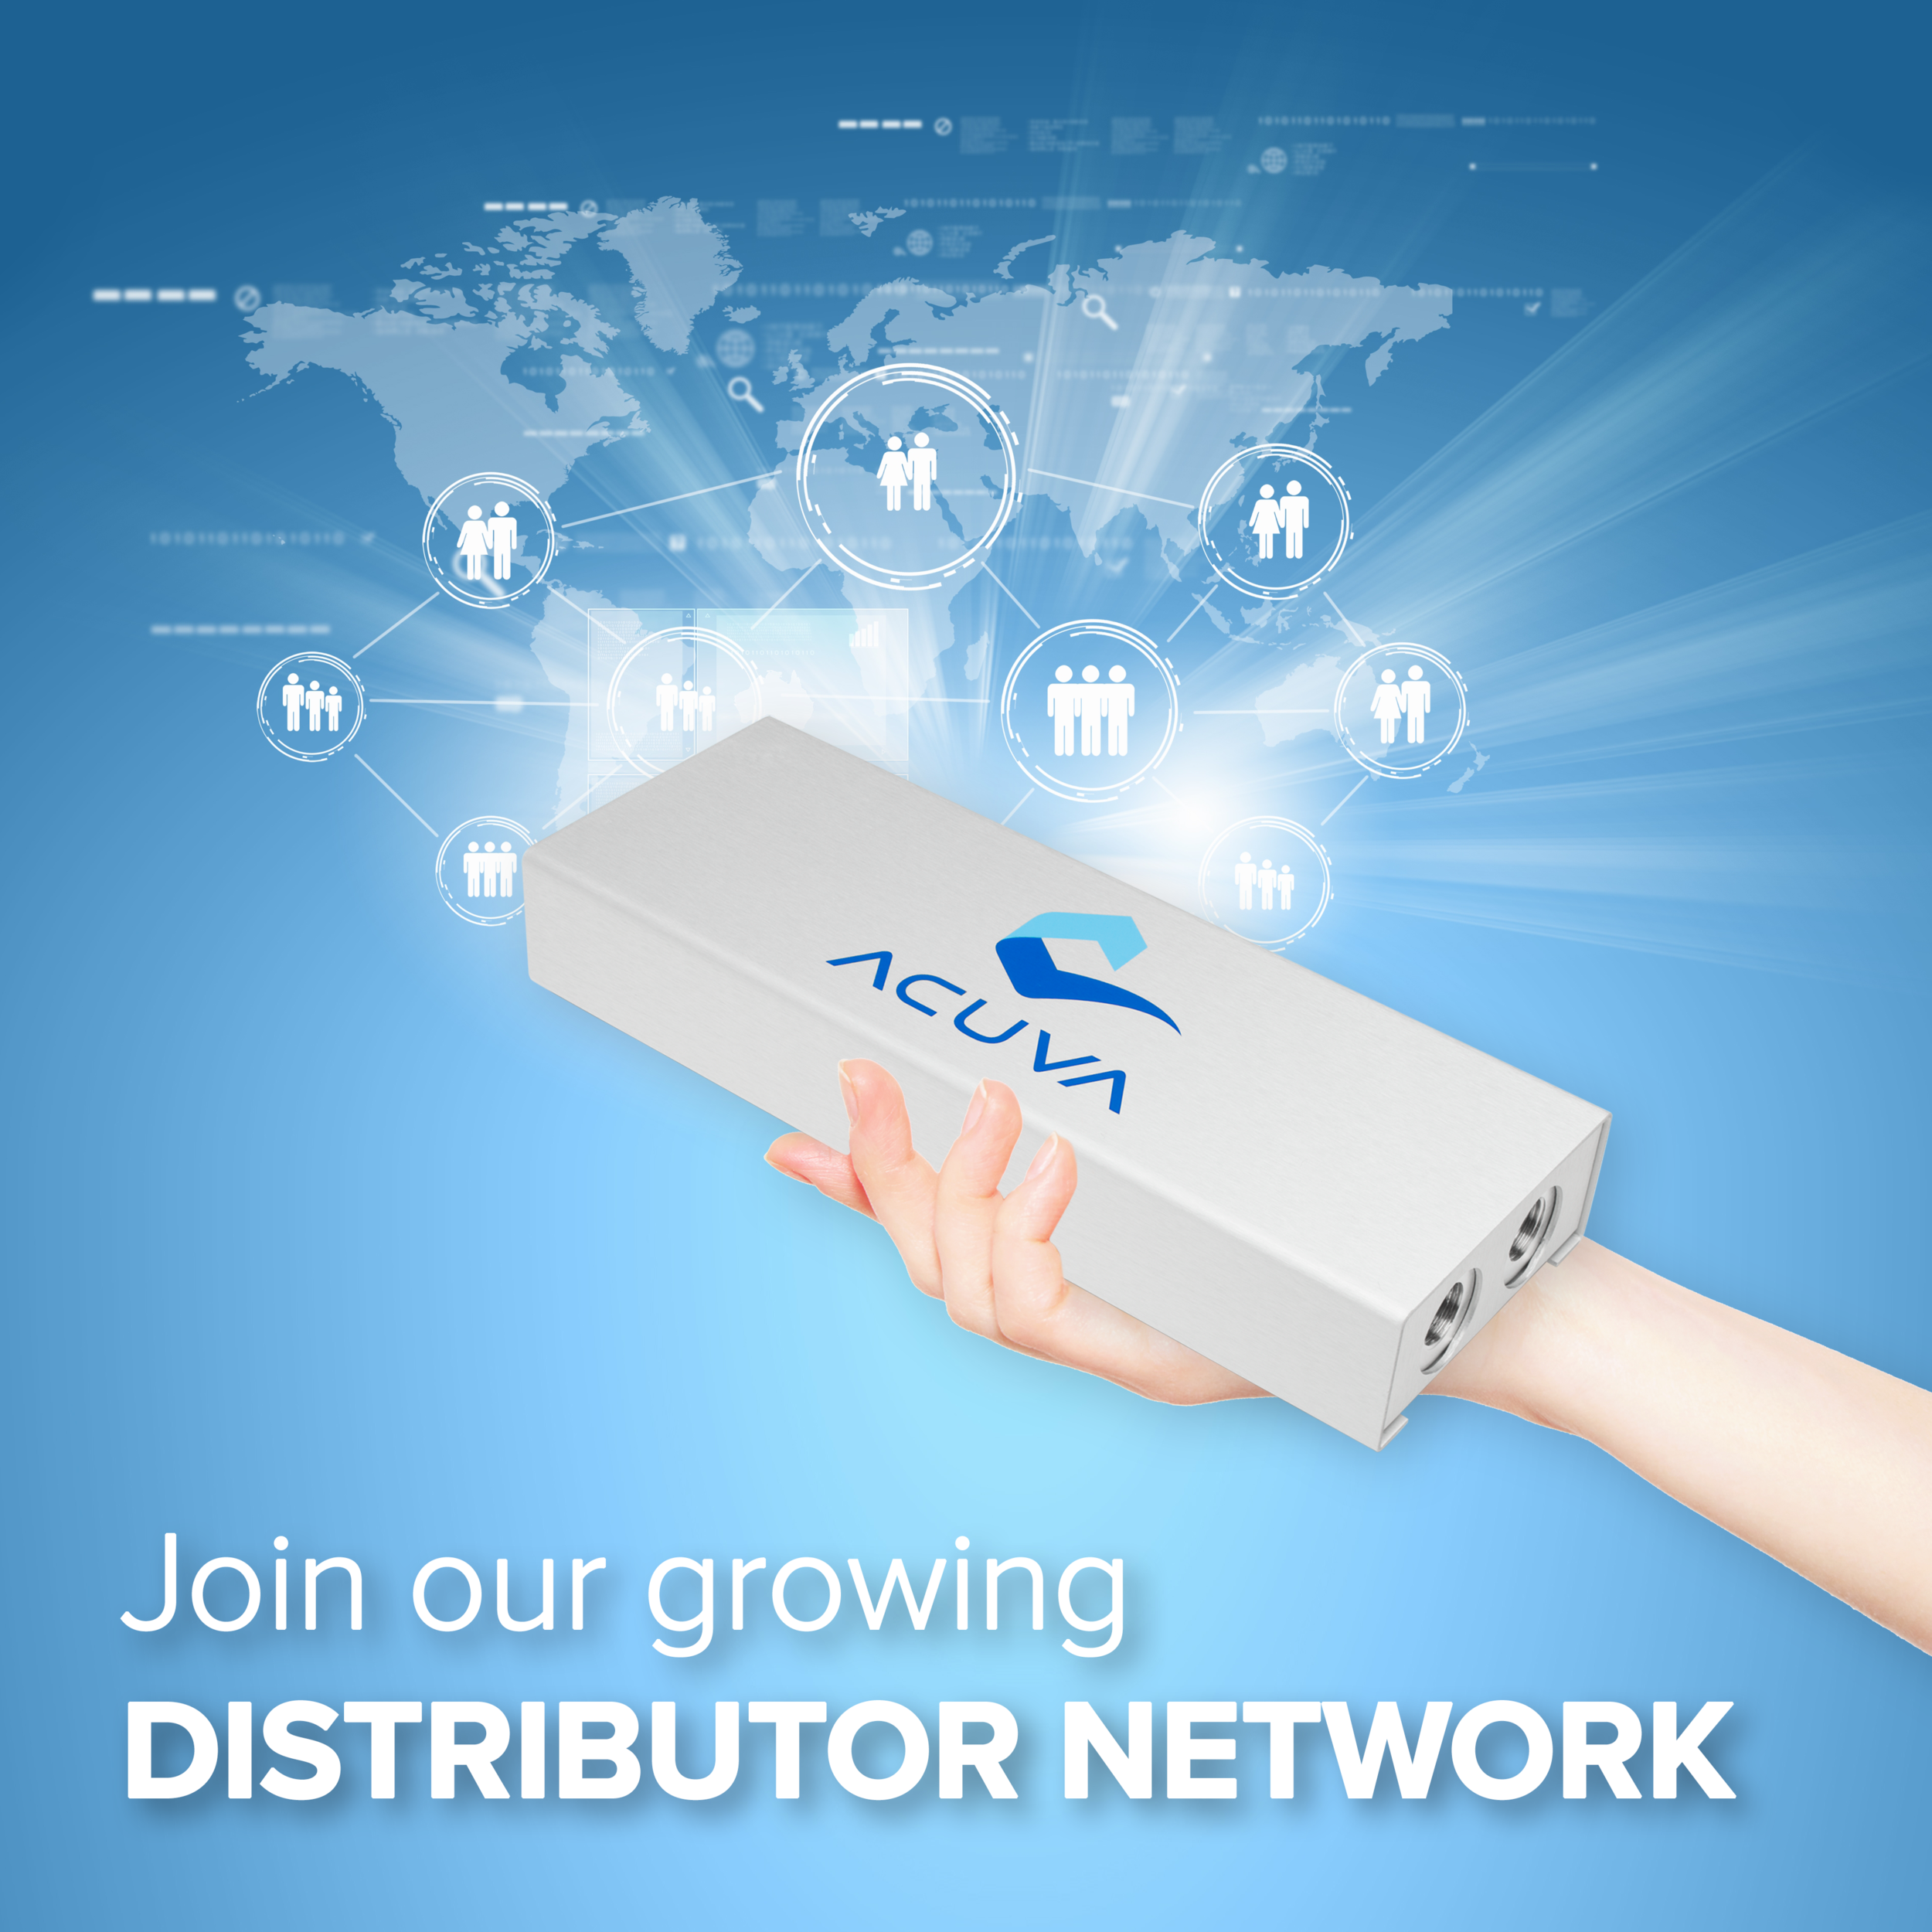 Distributor-Network.png